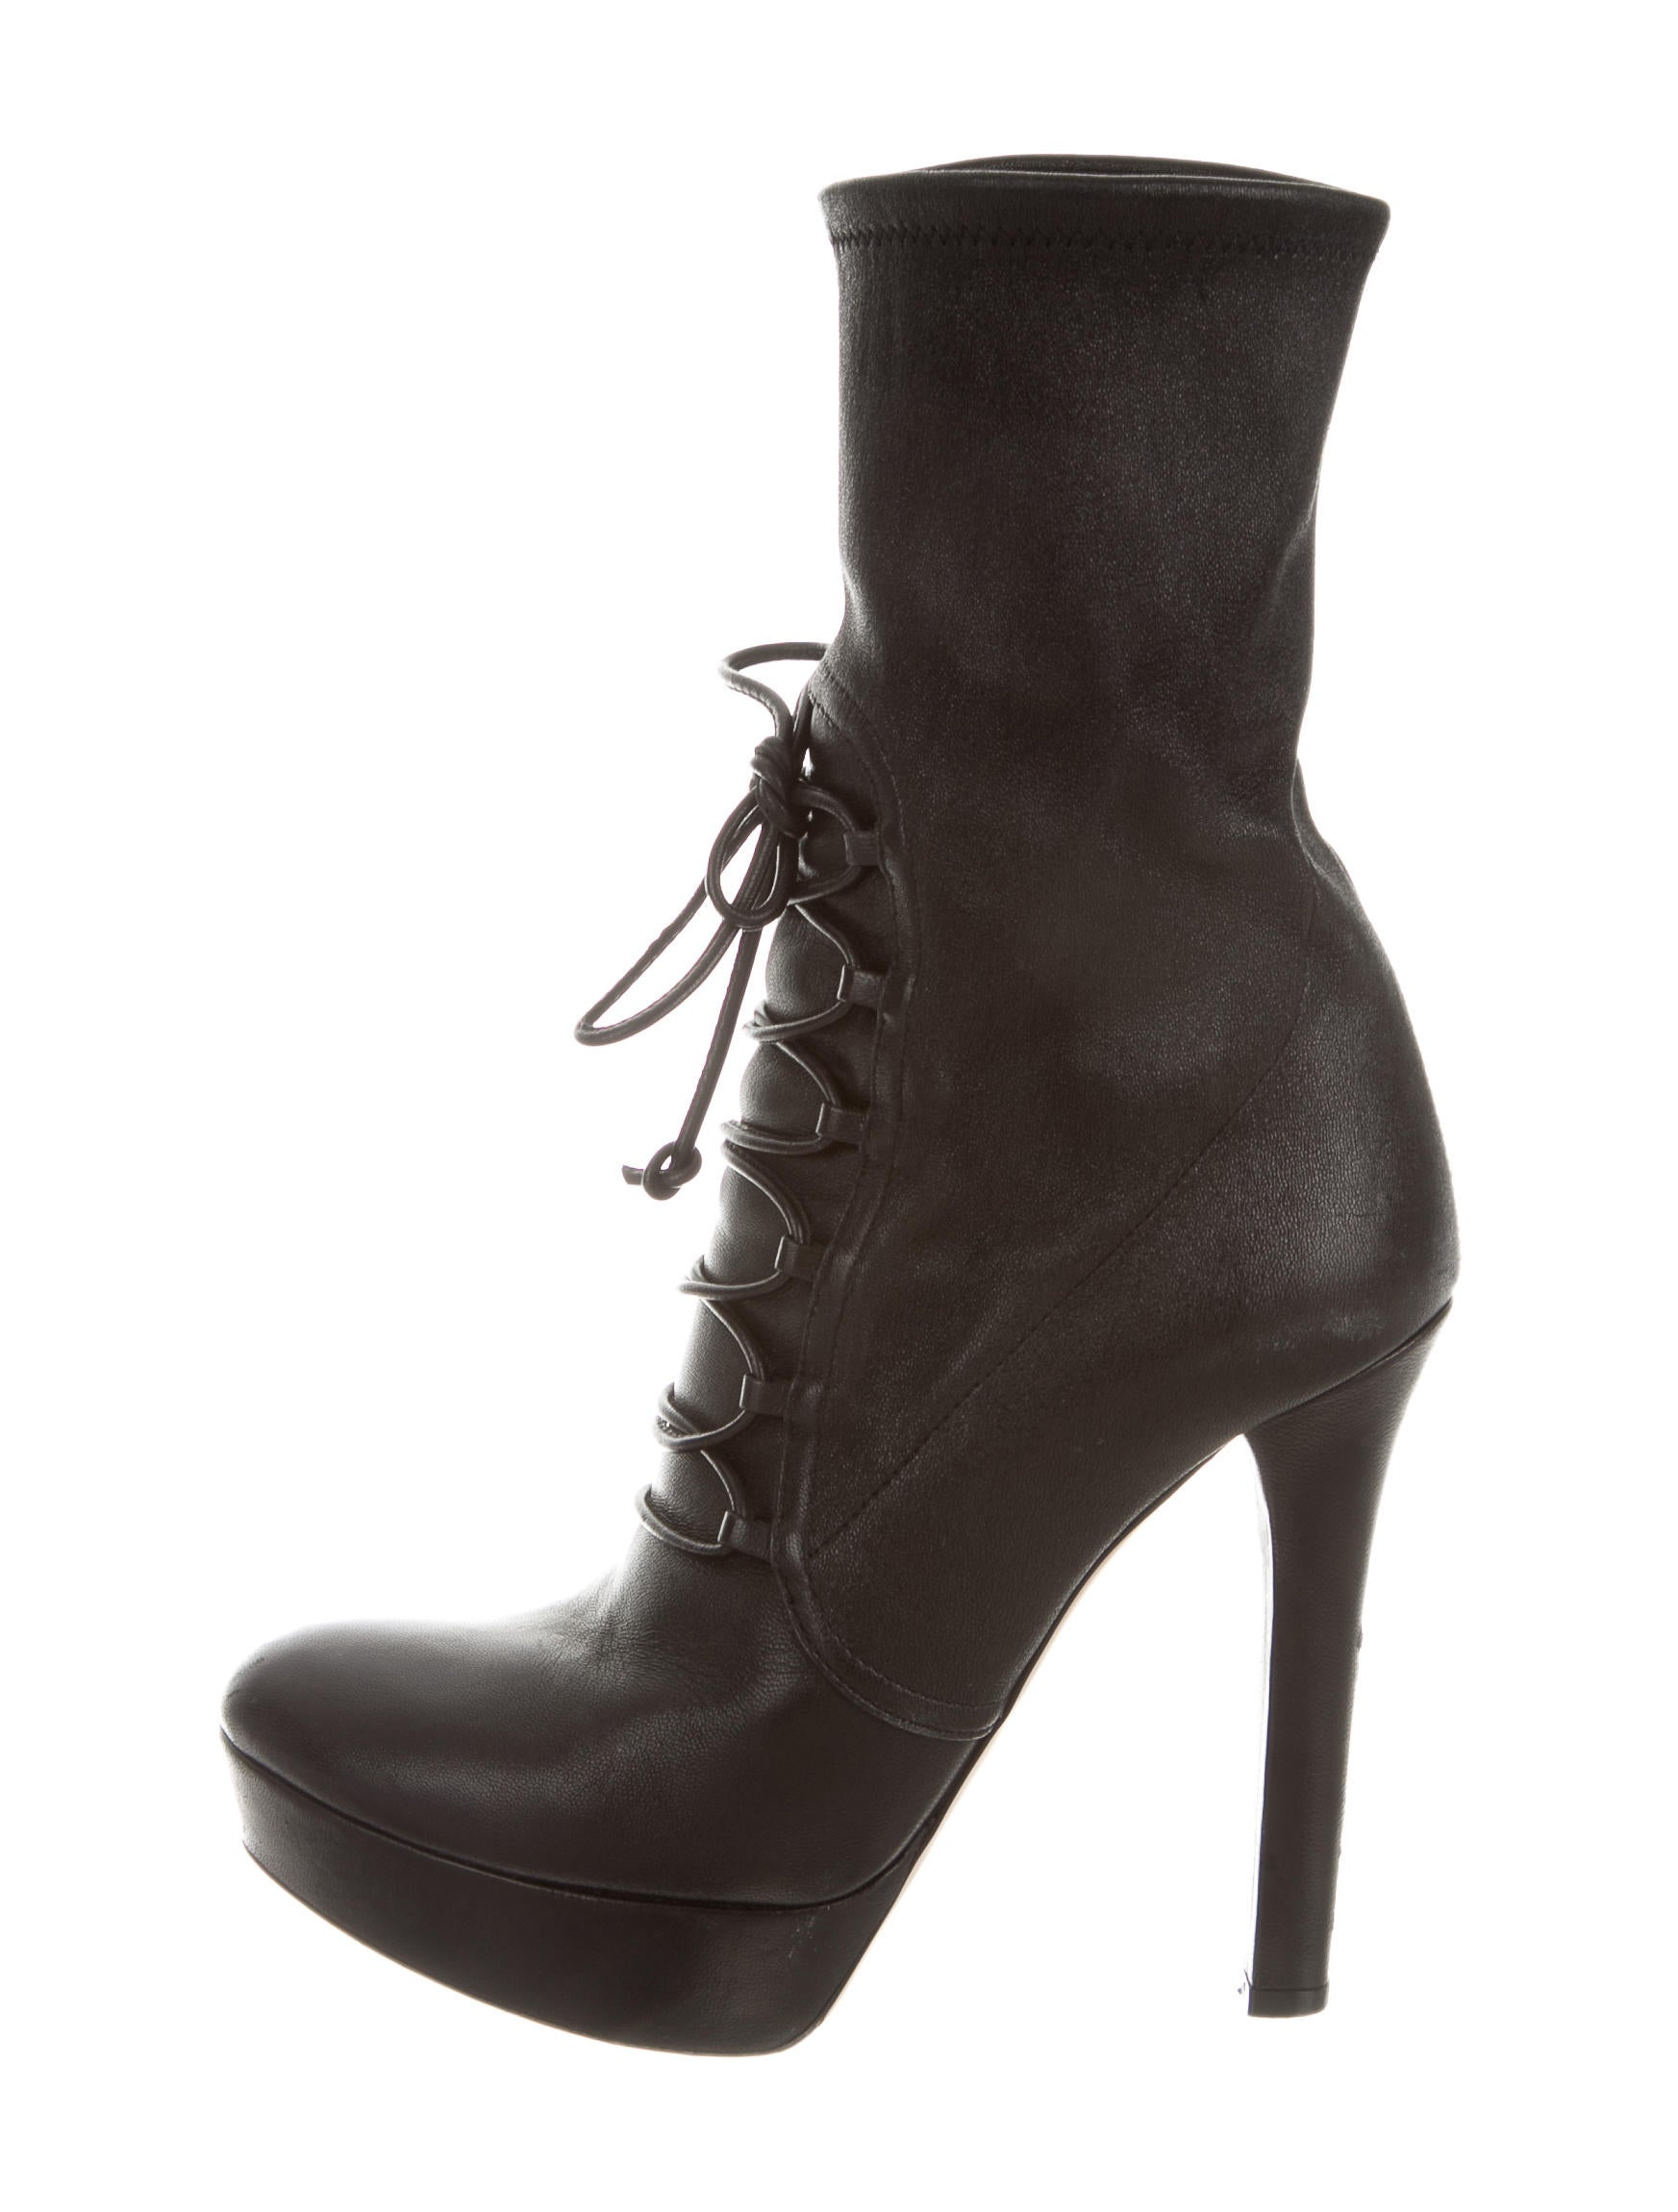 miu miu leather lace up ankle boots shoes miu39687